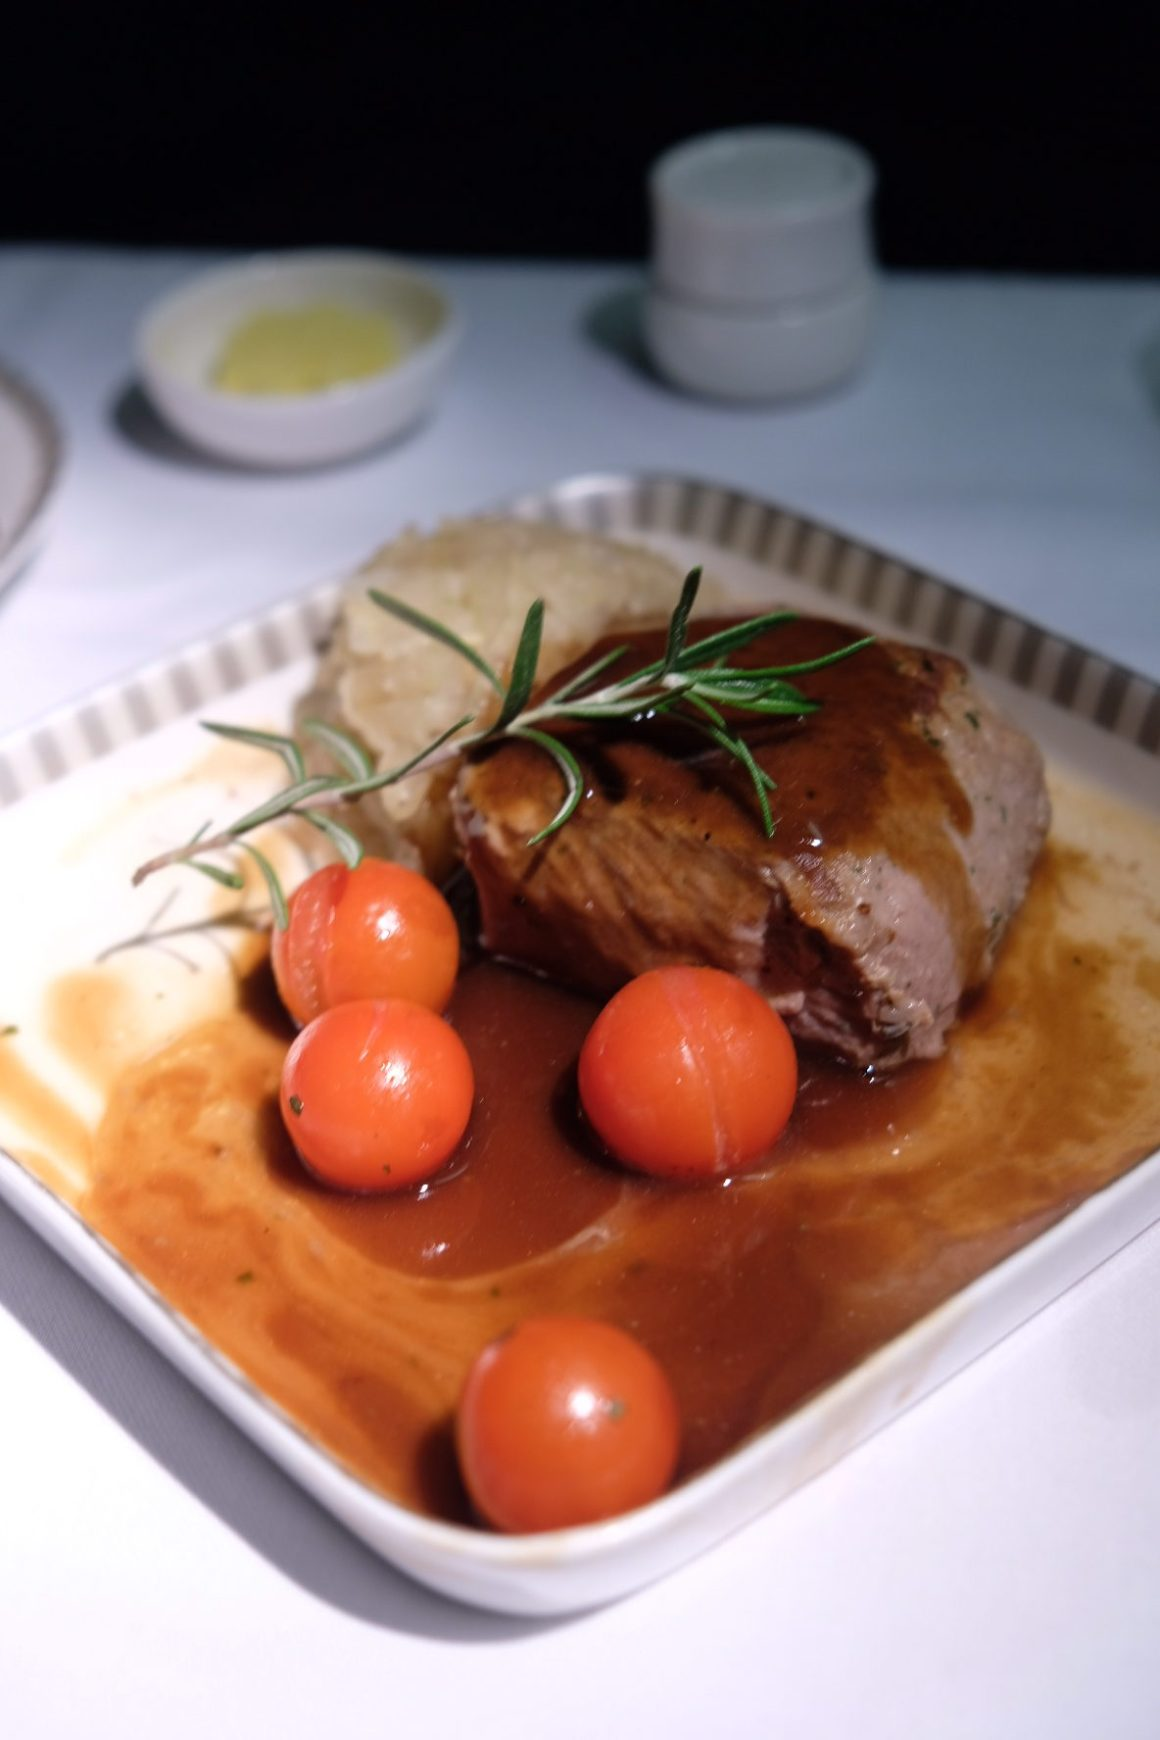 Singapore Airlines Business Class SQ334 From Singapore To Paris – Seared Lamb Loin